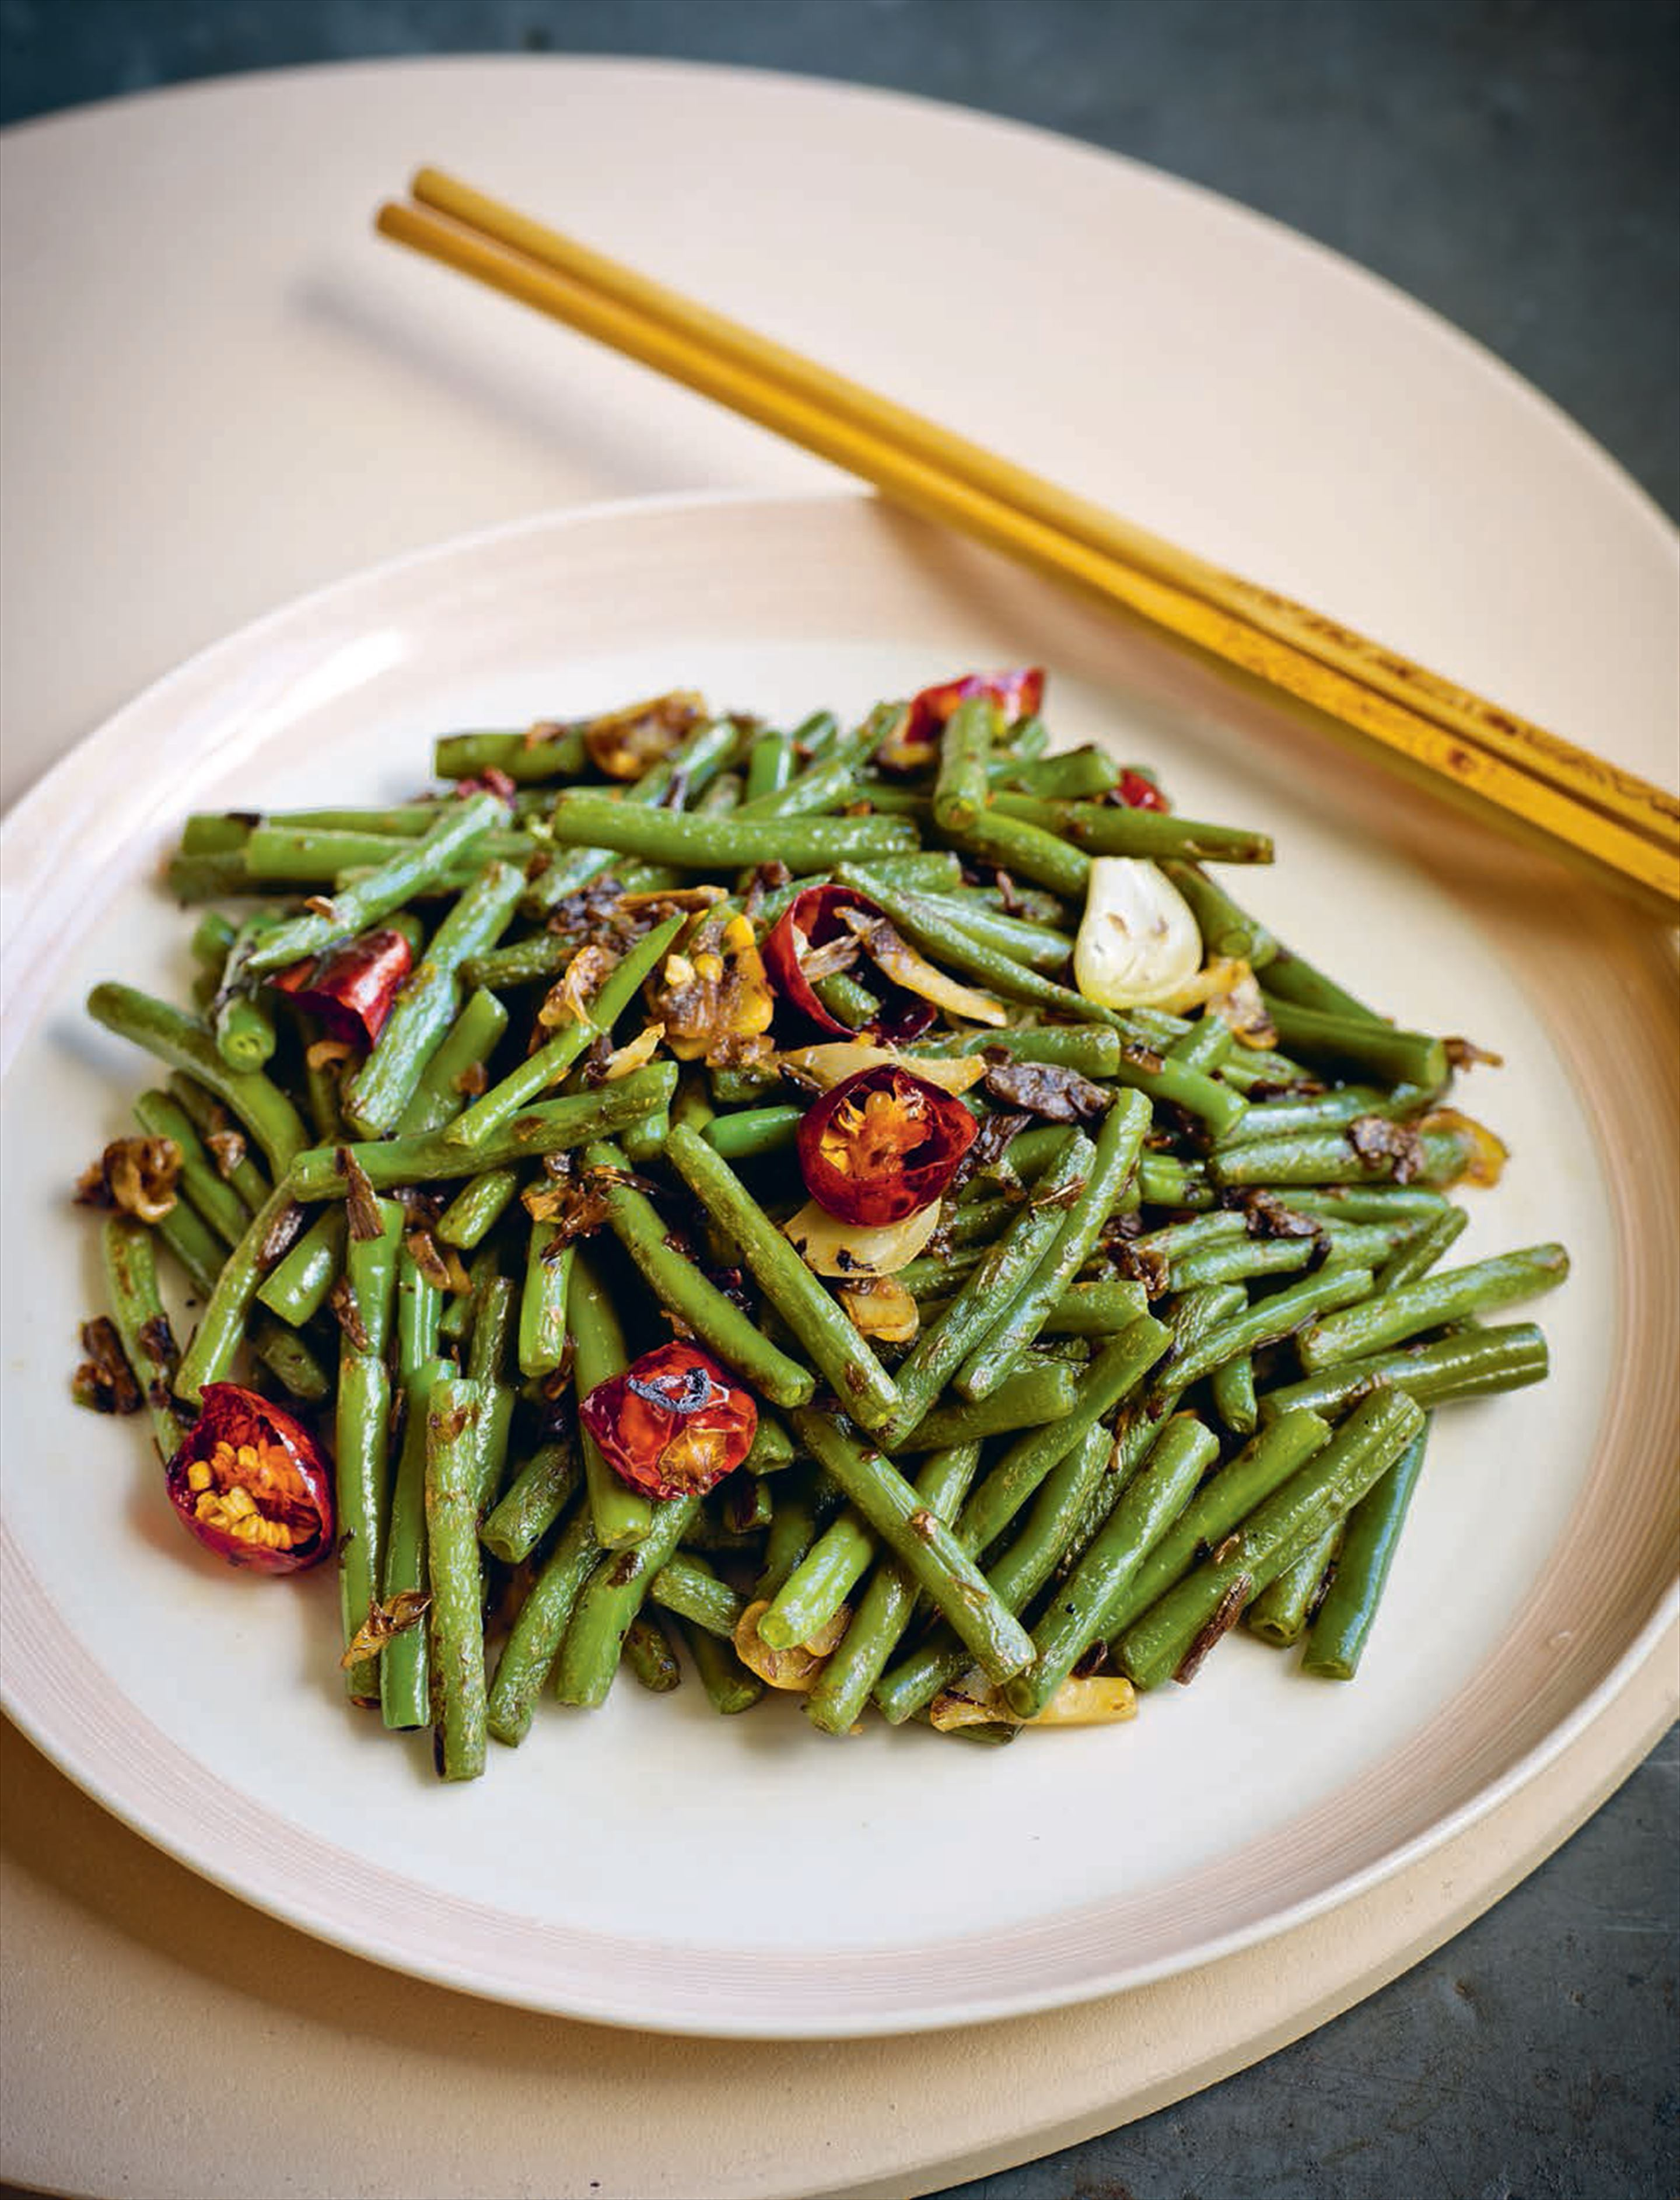 Sichuanese 'dry-fried' green beans (vegetarian version)